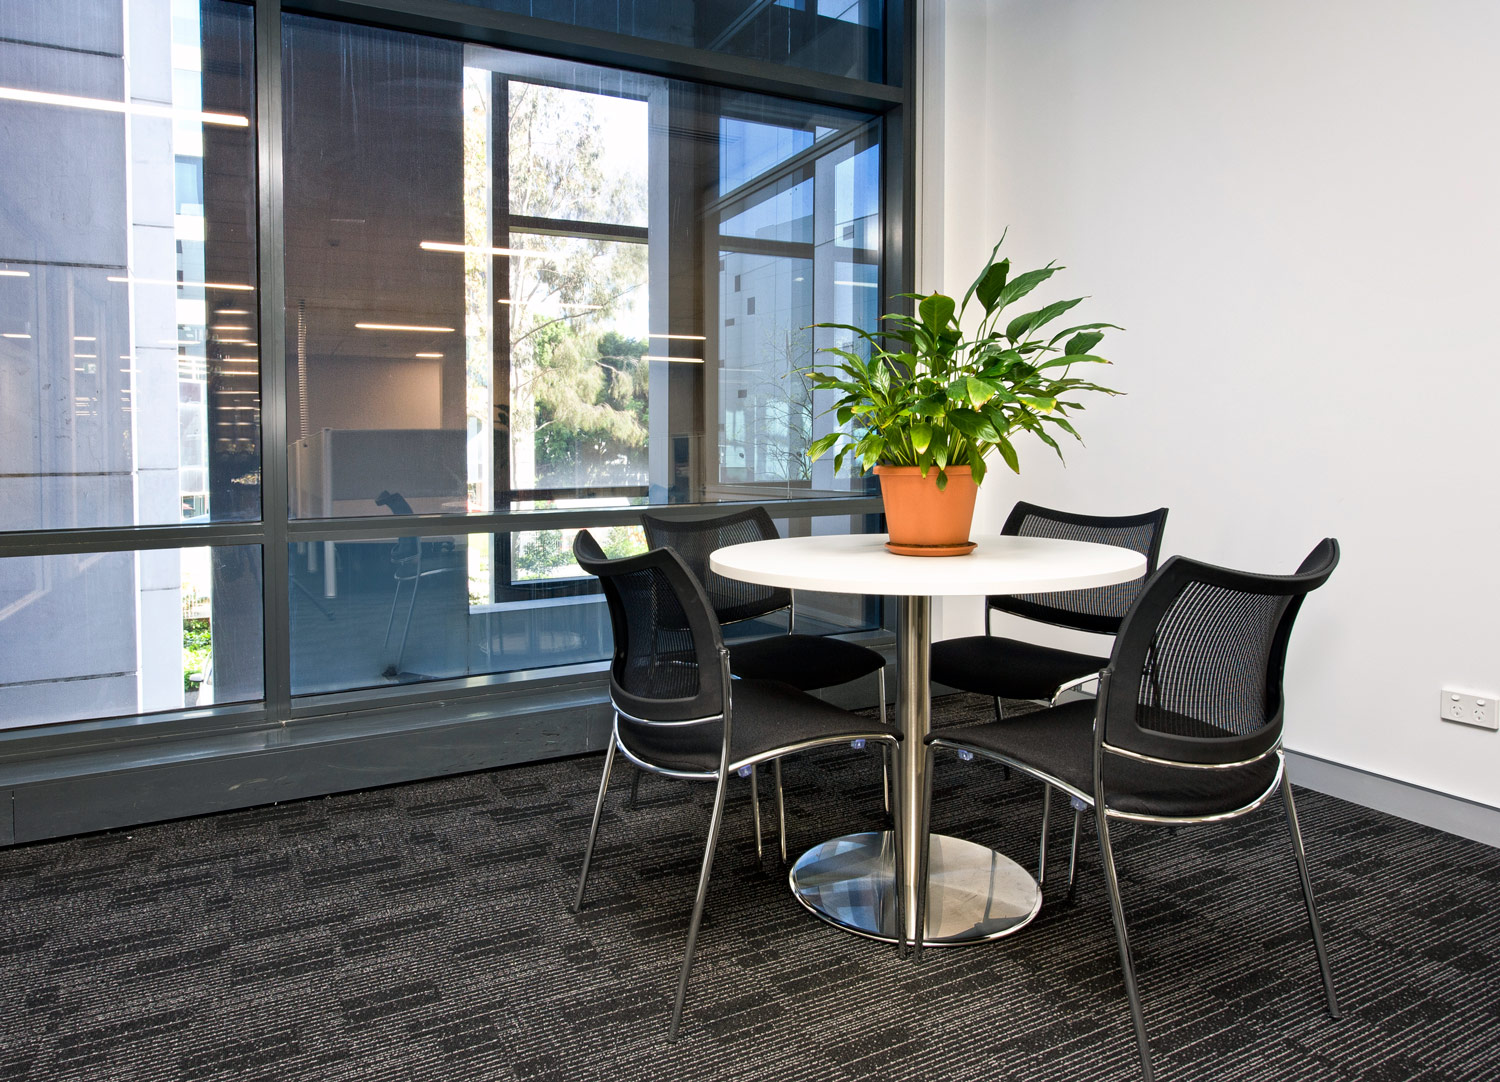 Stainless disc base table, TZ meeting chairs